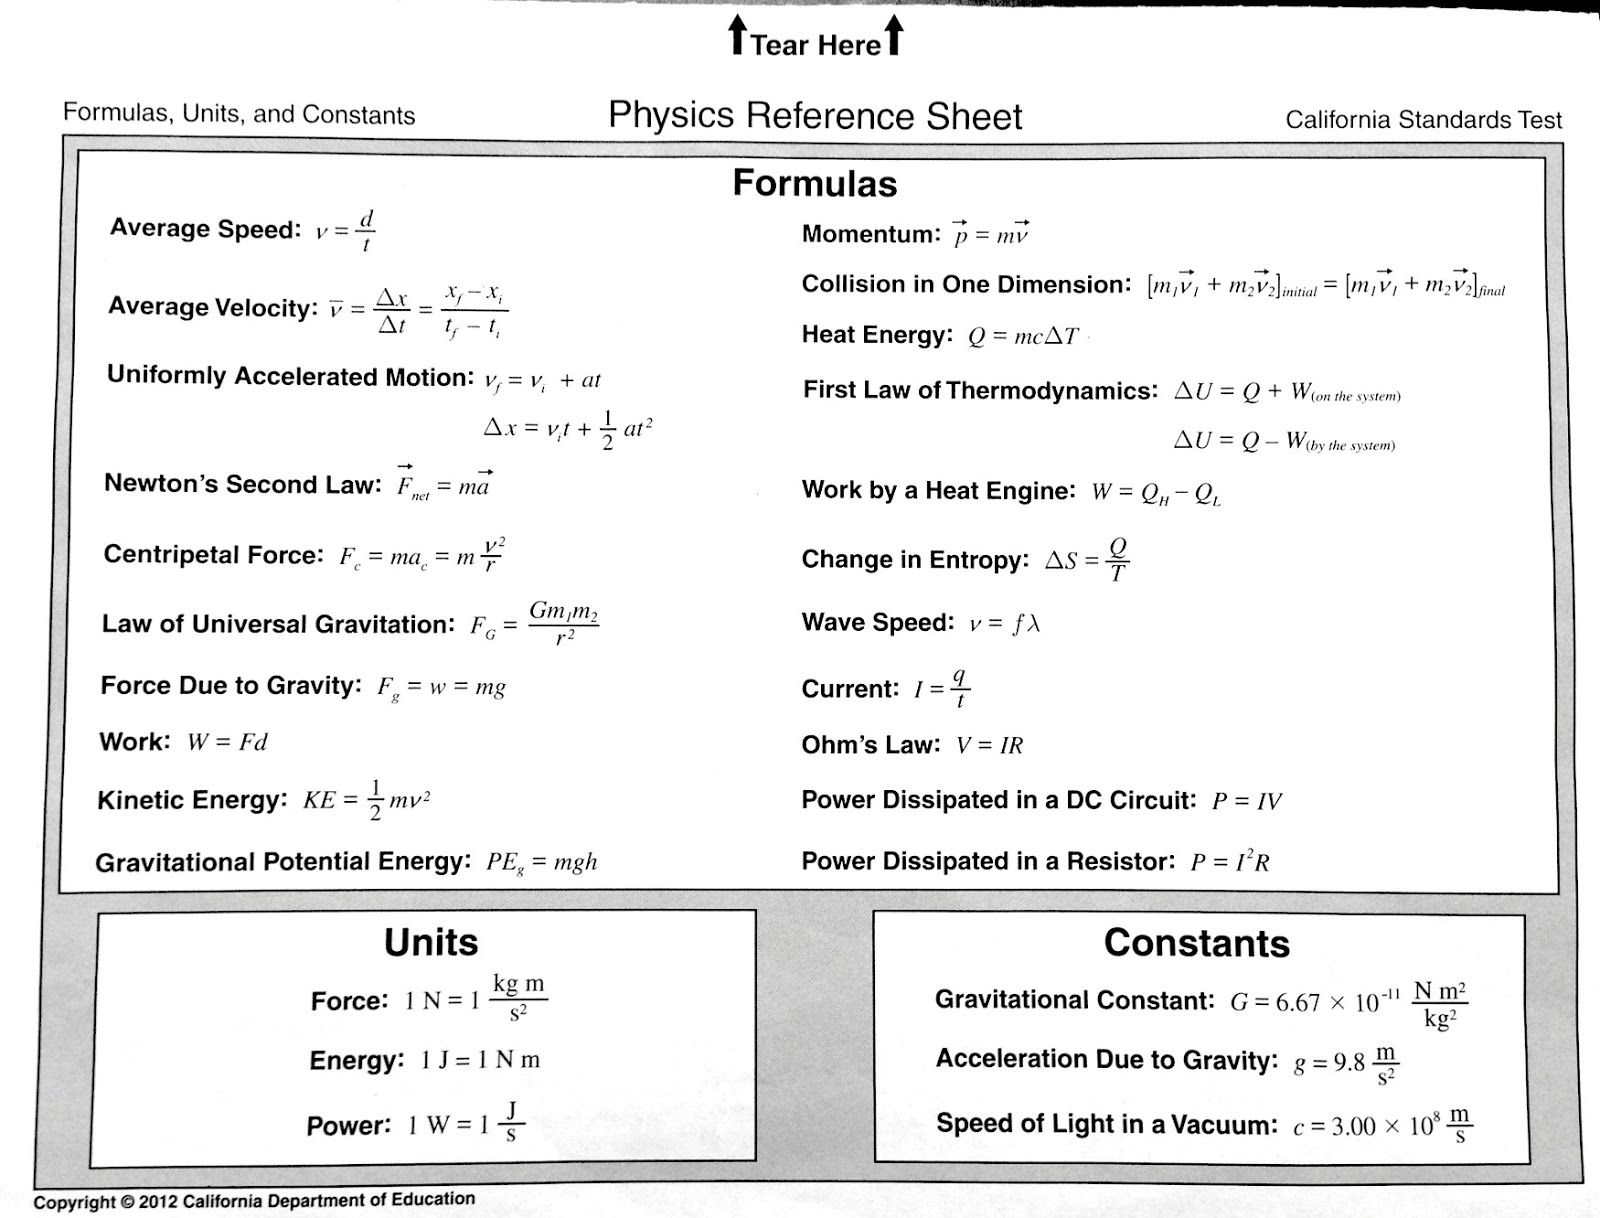 The Blog Of Phyz Changes To The California Physics Reference Sheet